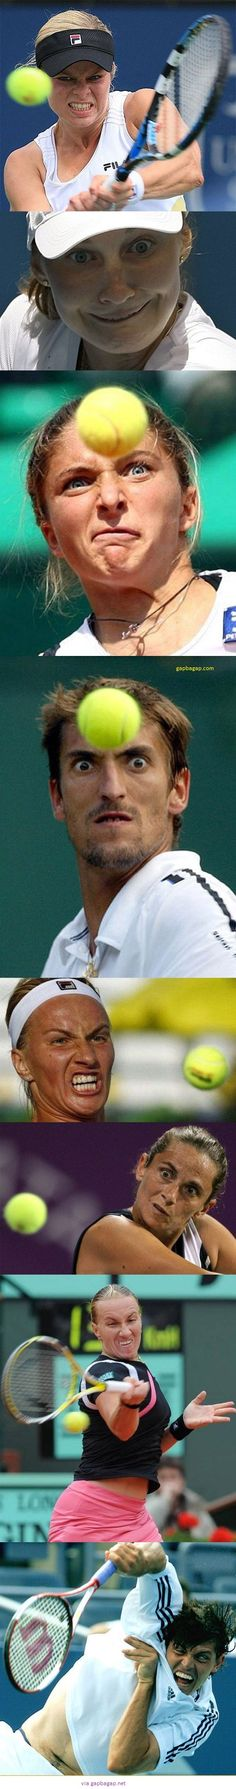 Funny Pictures Of Tennis Players